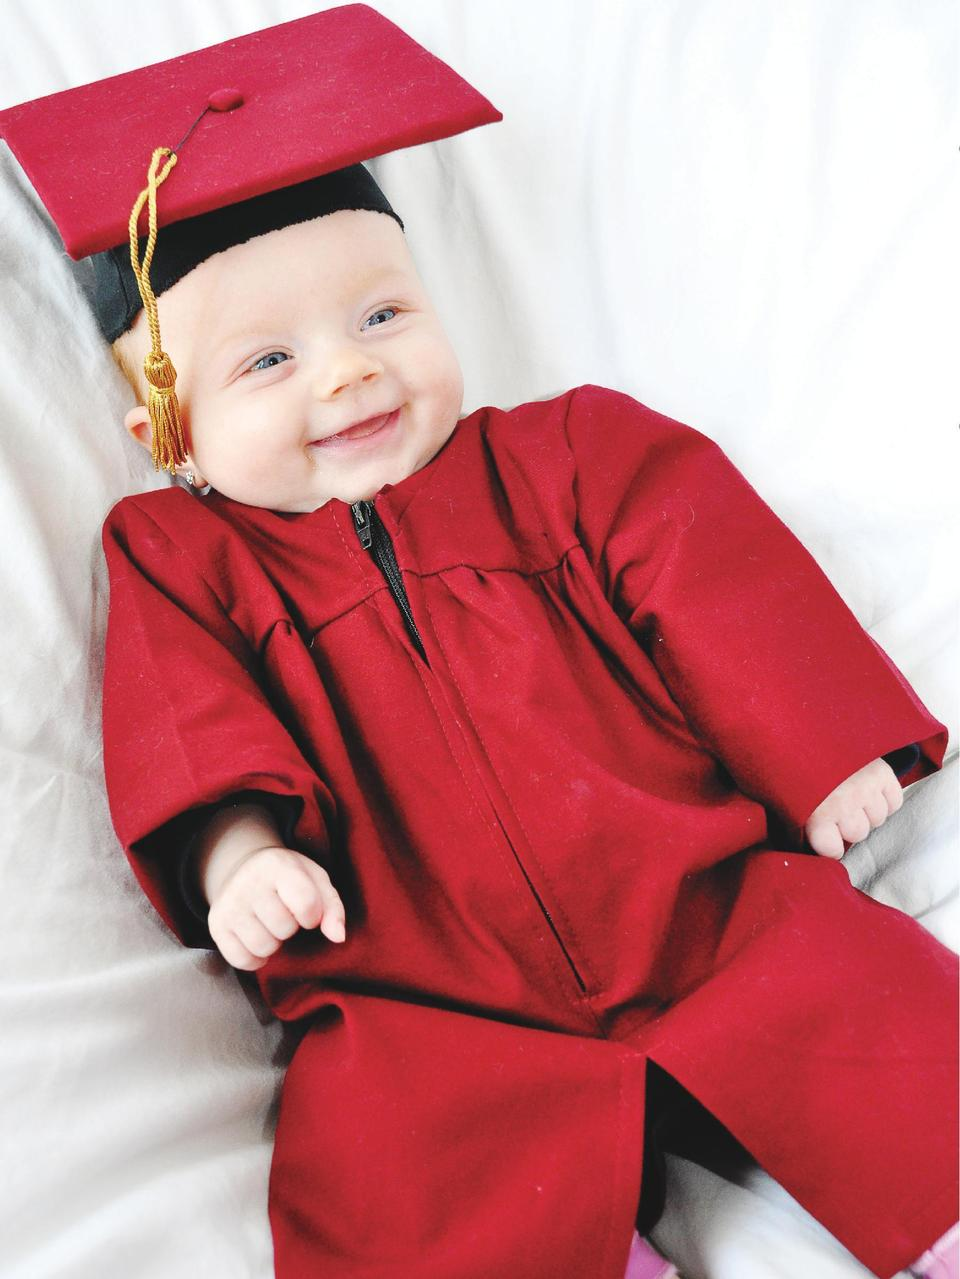 Baby Graduation Caps   Gowns This baby graduation cap and gown is one-of a-kind and can be used for any graduation. Includ...